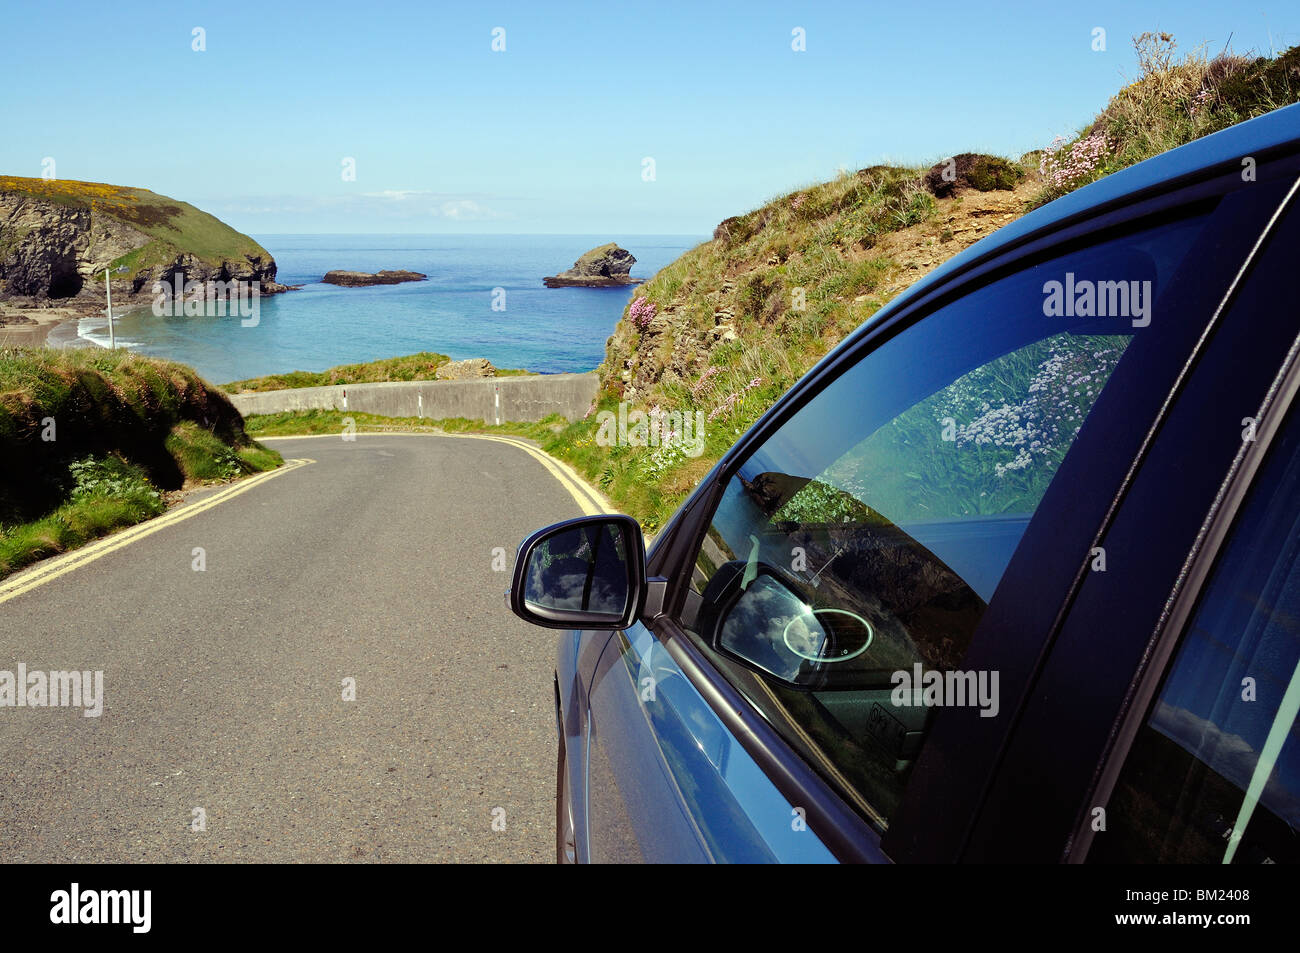 a car parked in a lay by near portreath in cornwall, uk - Stock Image